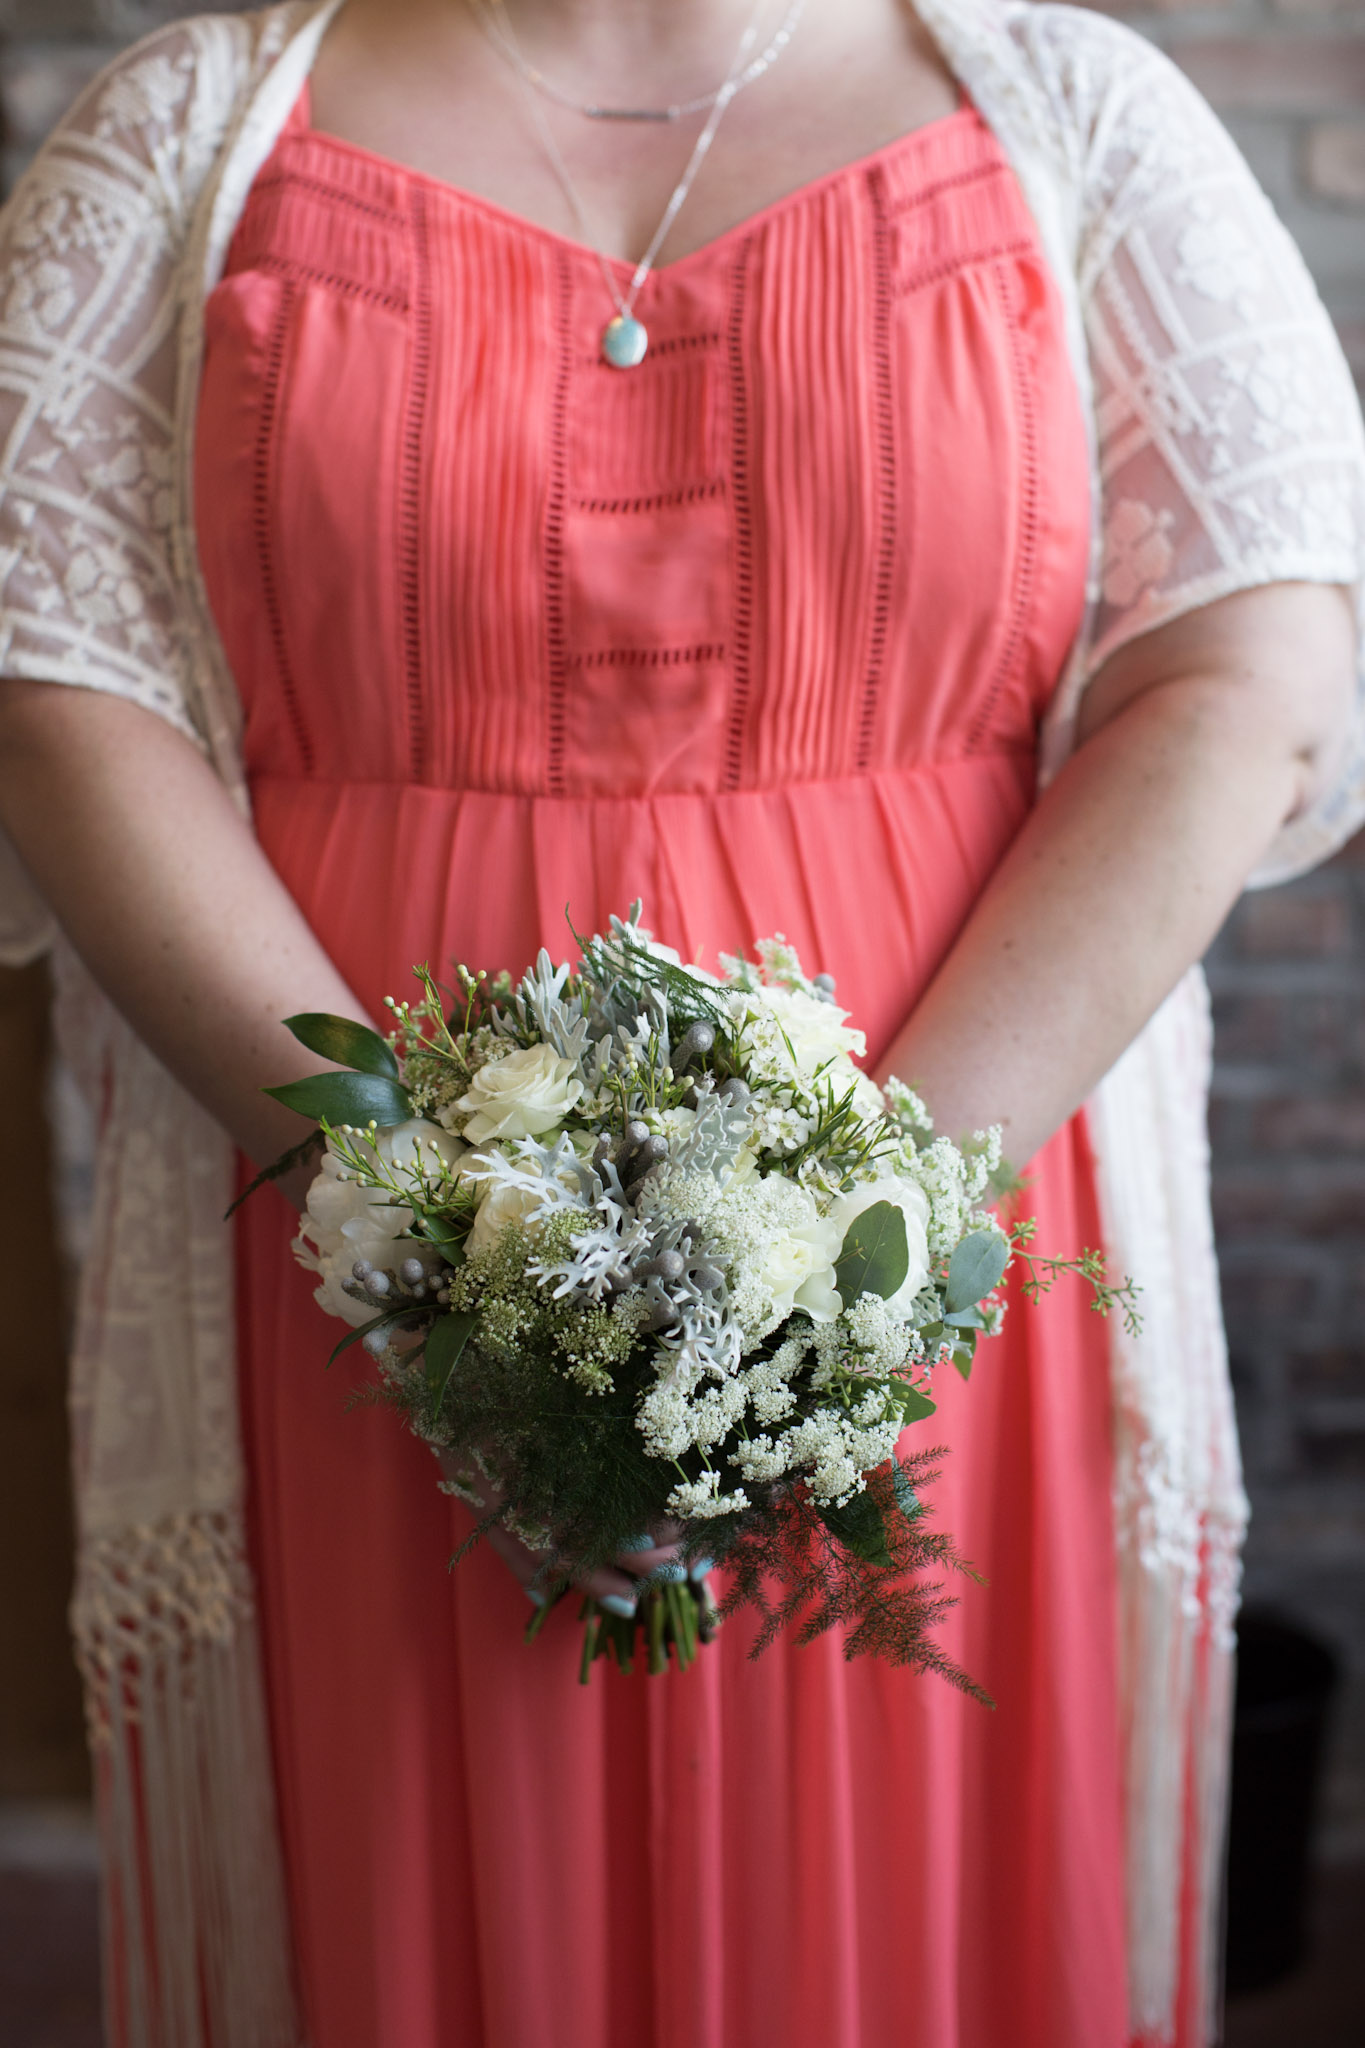 Kansas_City_Small_Wedding_Venue_Elope_Intimate_Ceremony_Budget_Affordable_Summer_Flowers_KM4A8136E&U.JPG